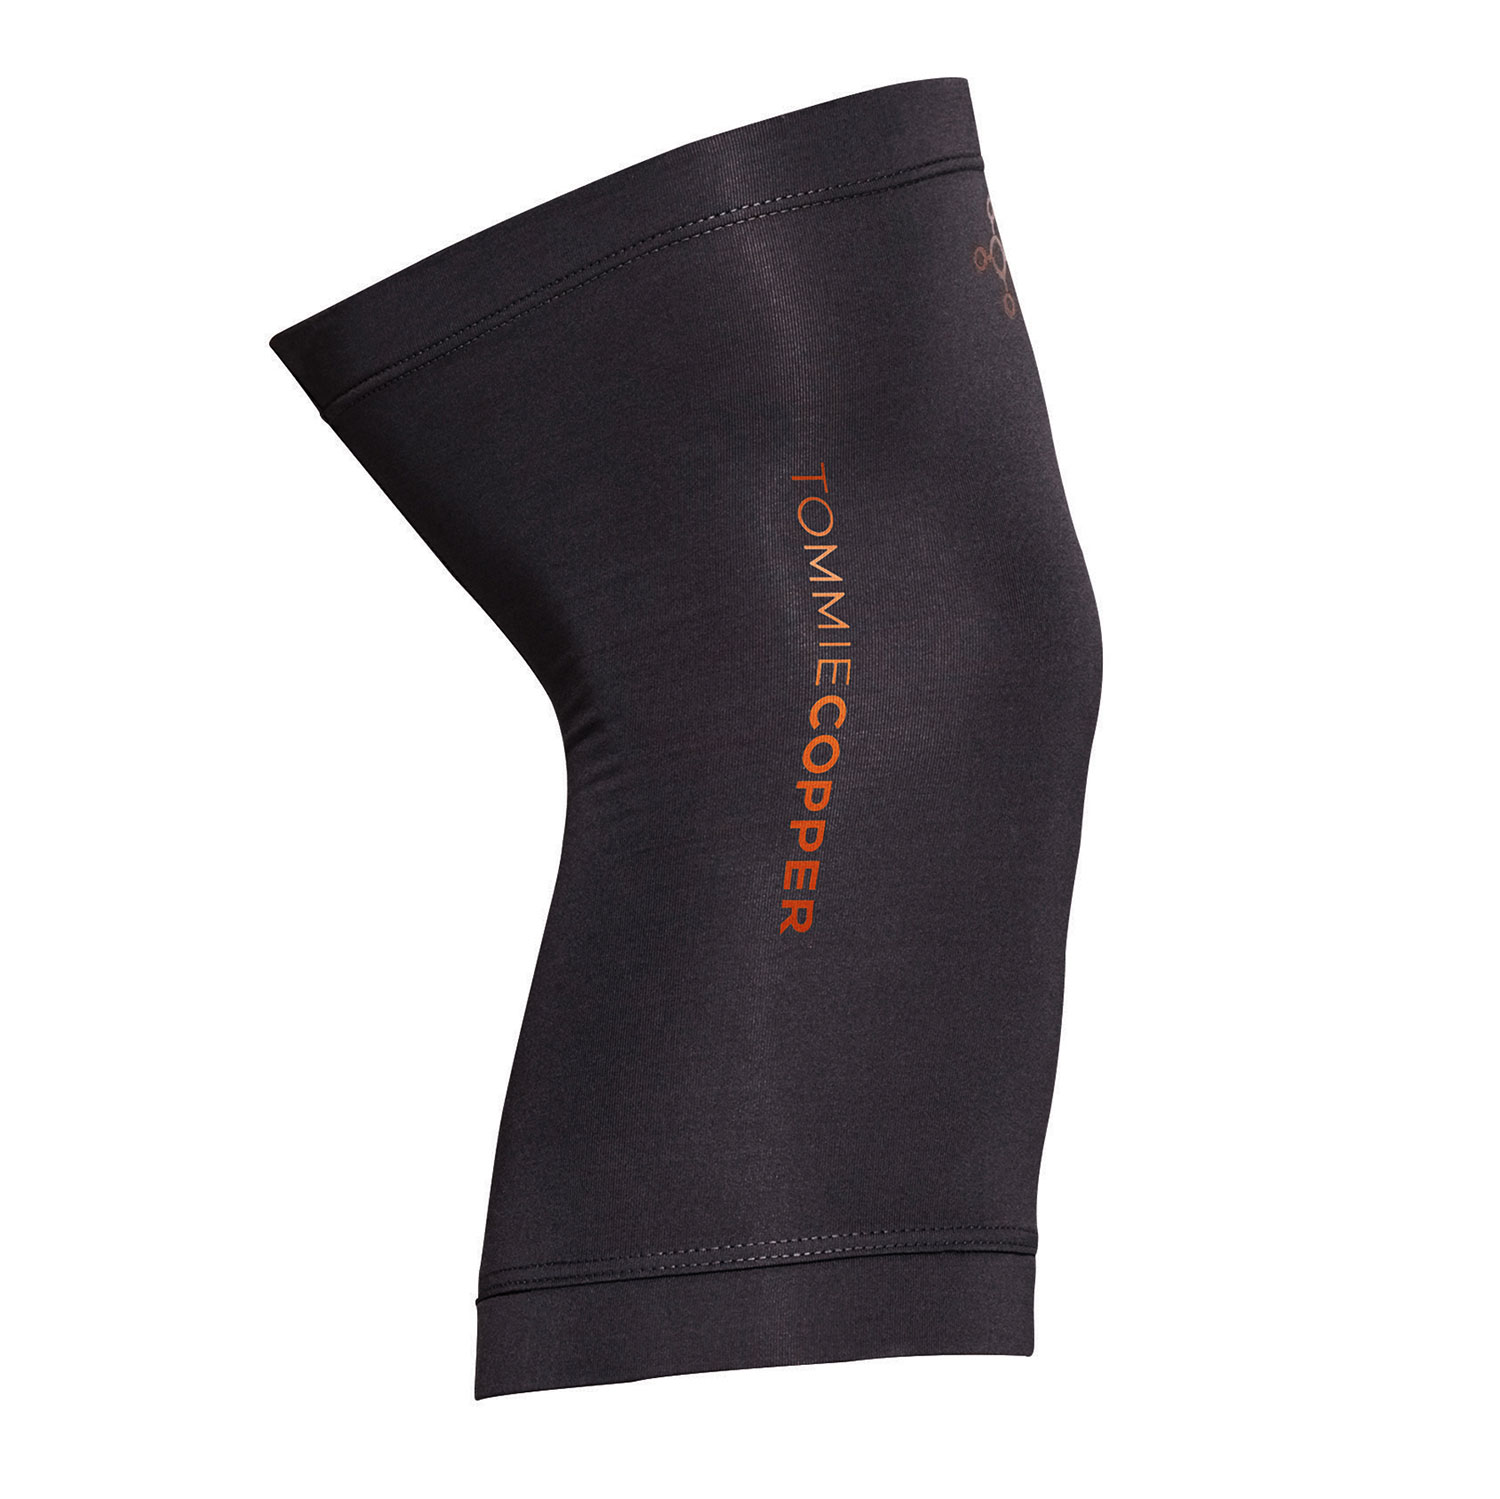 Tommie Copper Men's Core Compression Contoured Knee Sleeve